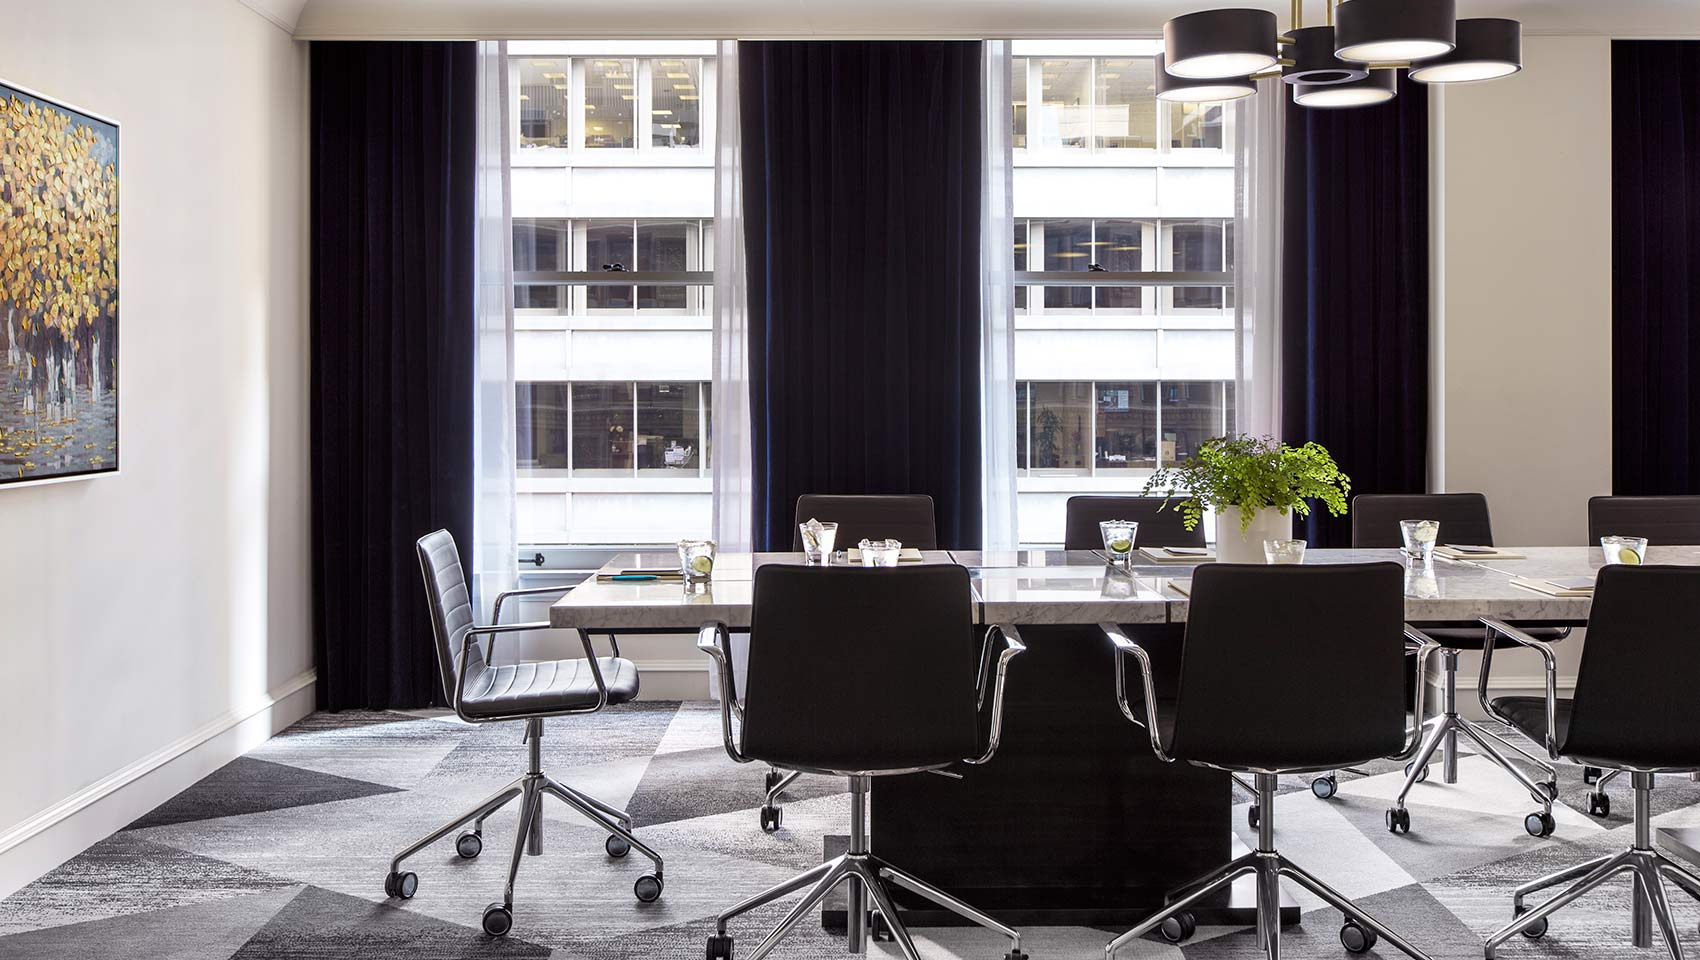 chicago meeting rooms Booth campuses in chicago and singapore offer world-class meeting facilities.